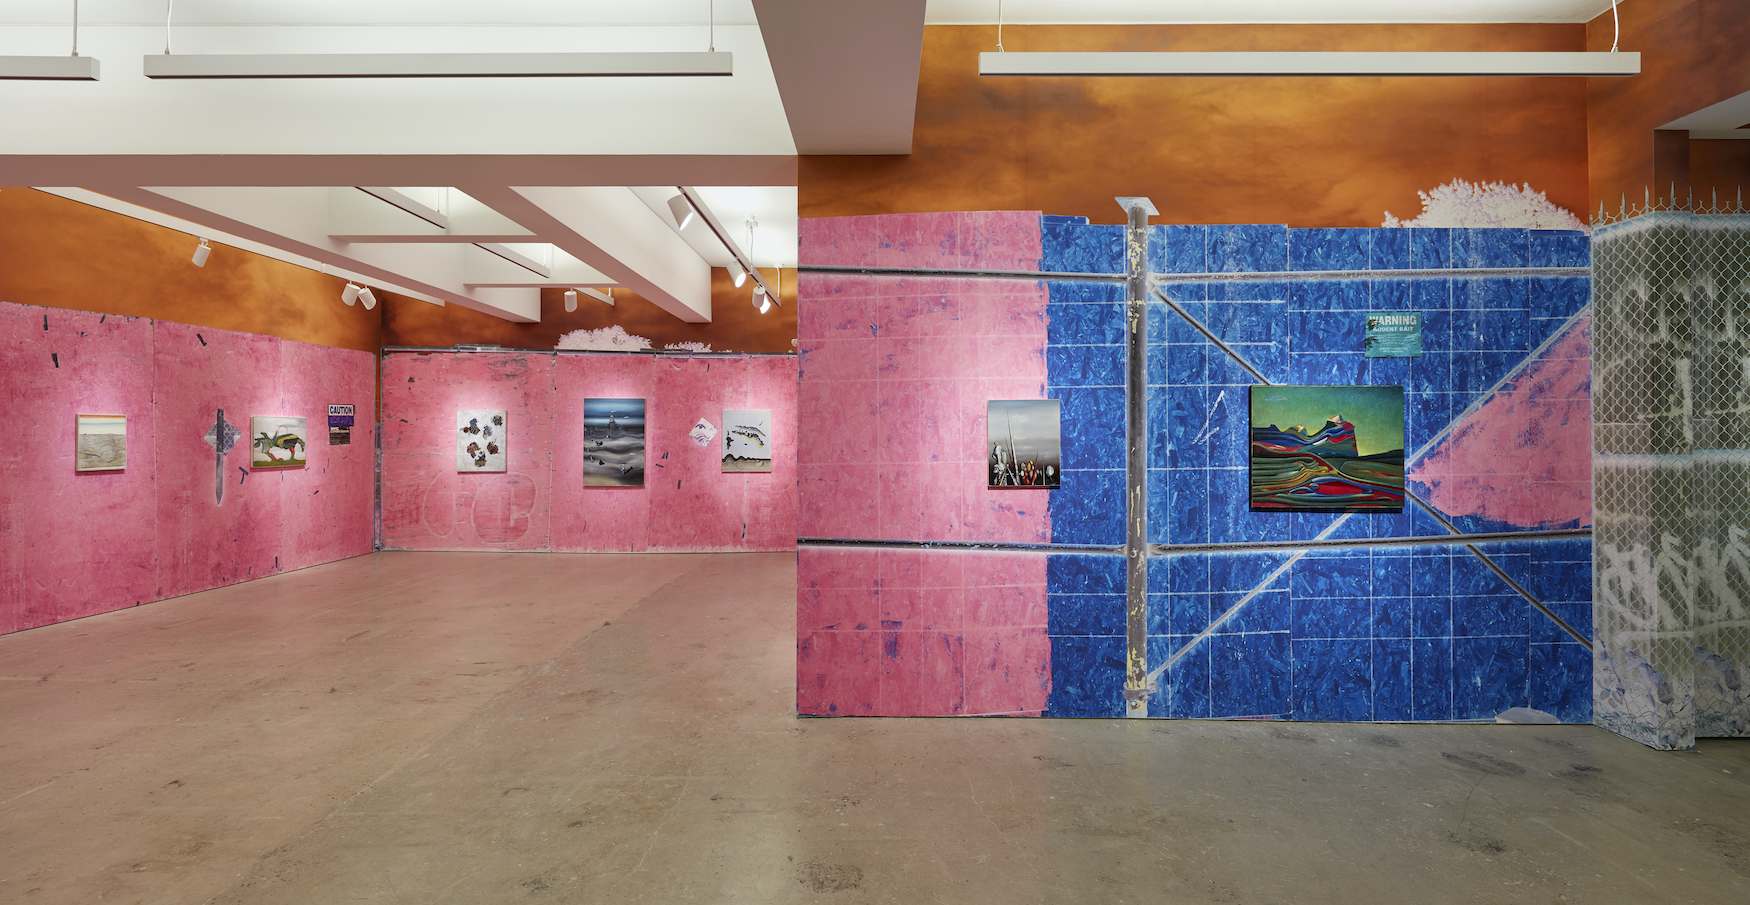 Installation view 2, SUPERUNKNOWN , 2020, Courtesy of Nahmad Contemporary